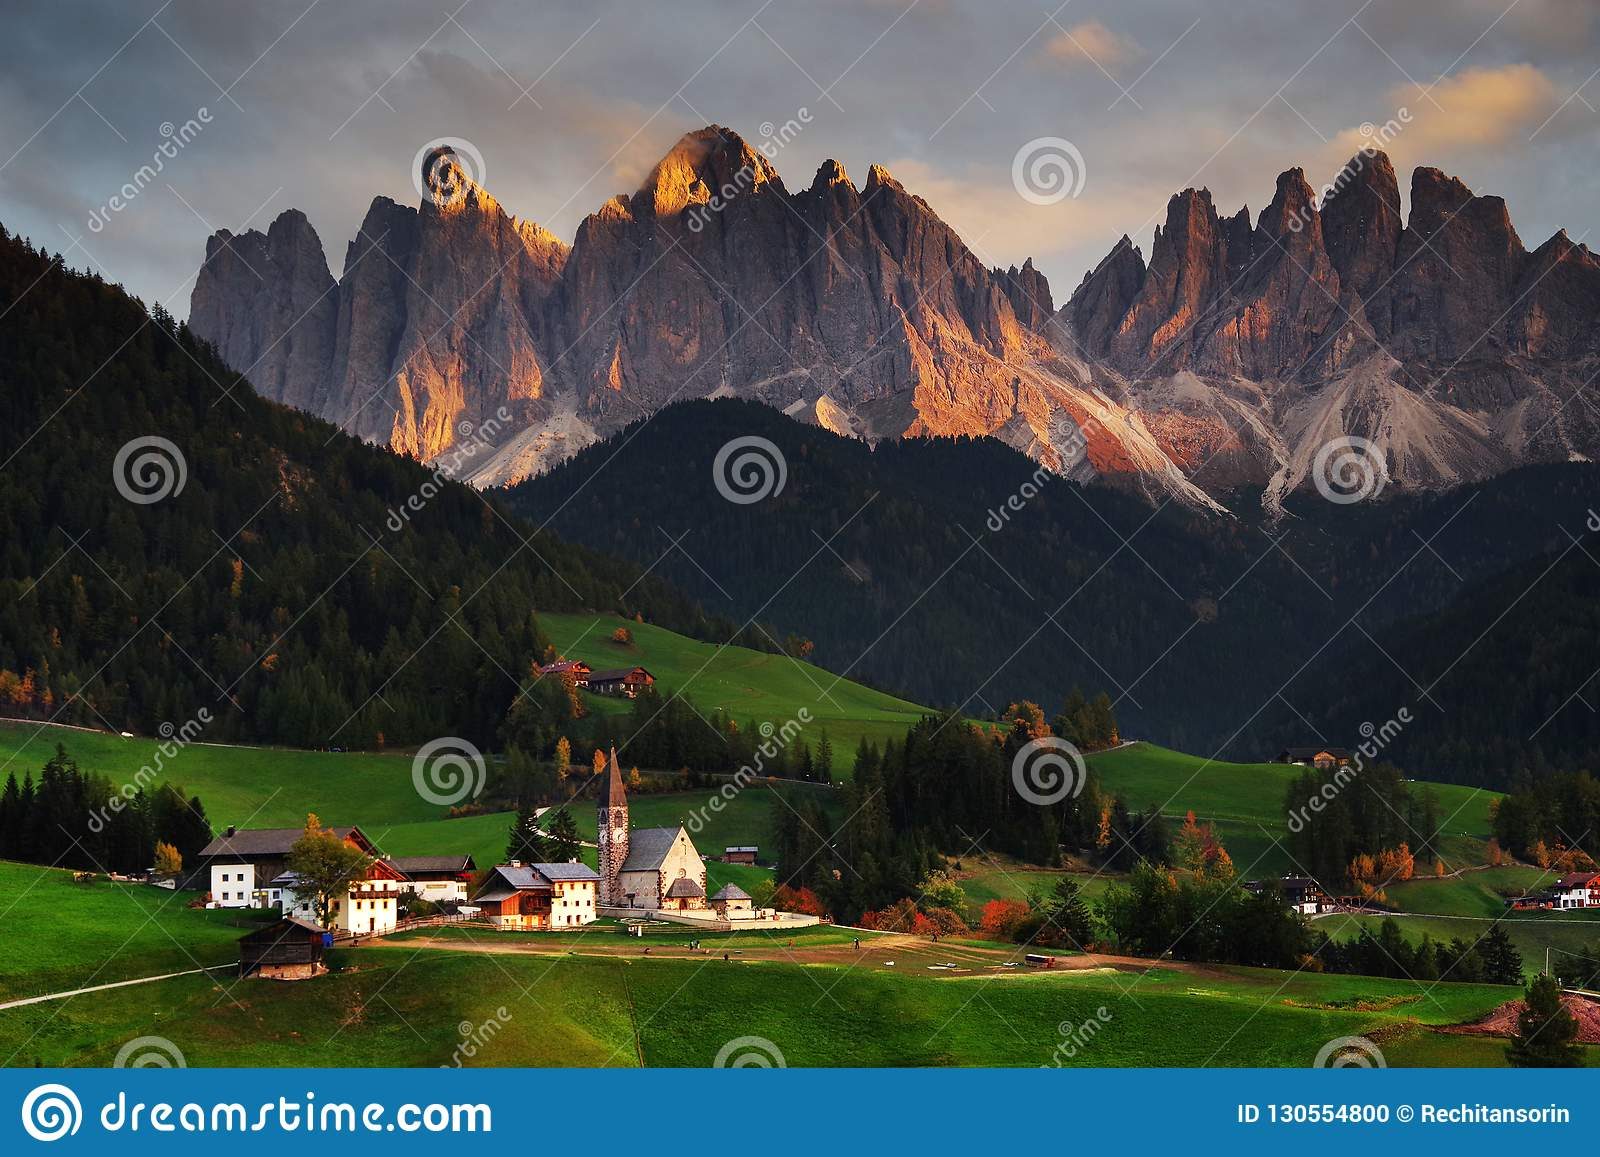 The church Santa Maddalena with the impressive Odle Mountains Group in the background, at sunset.